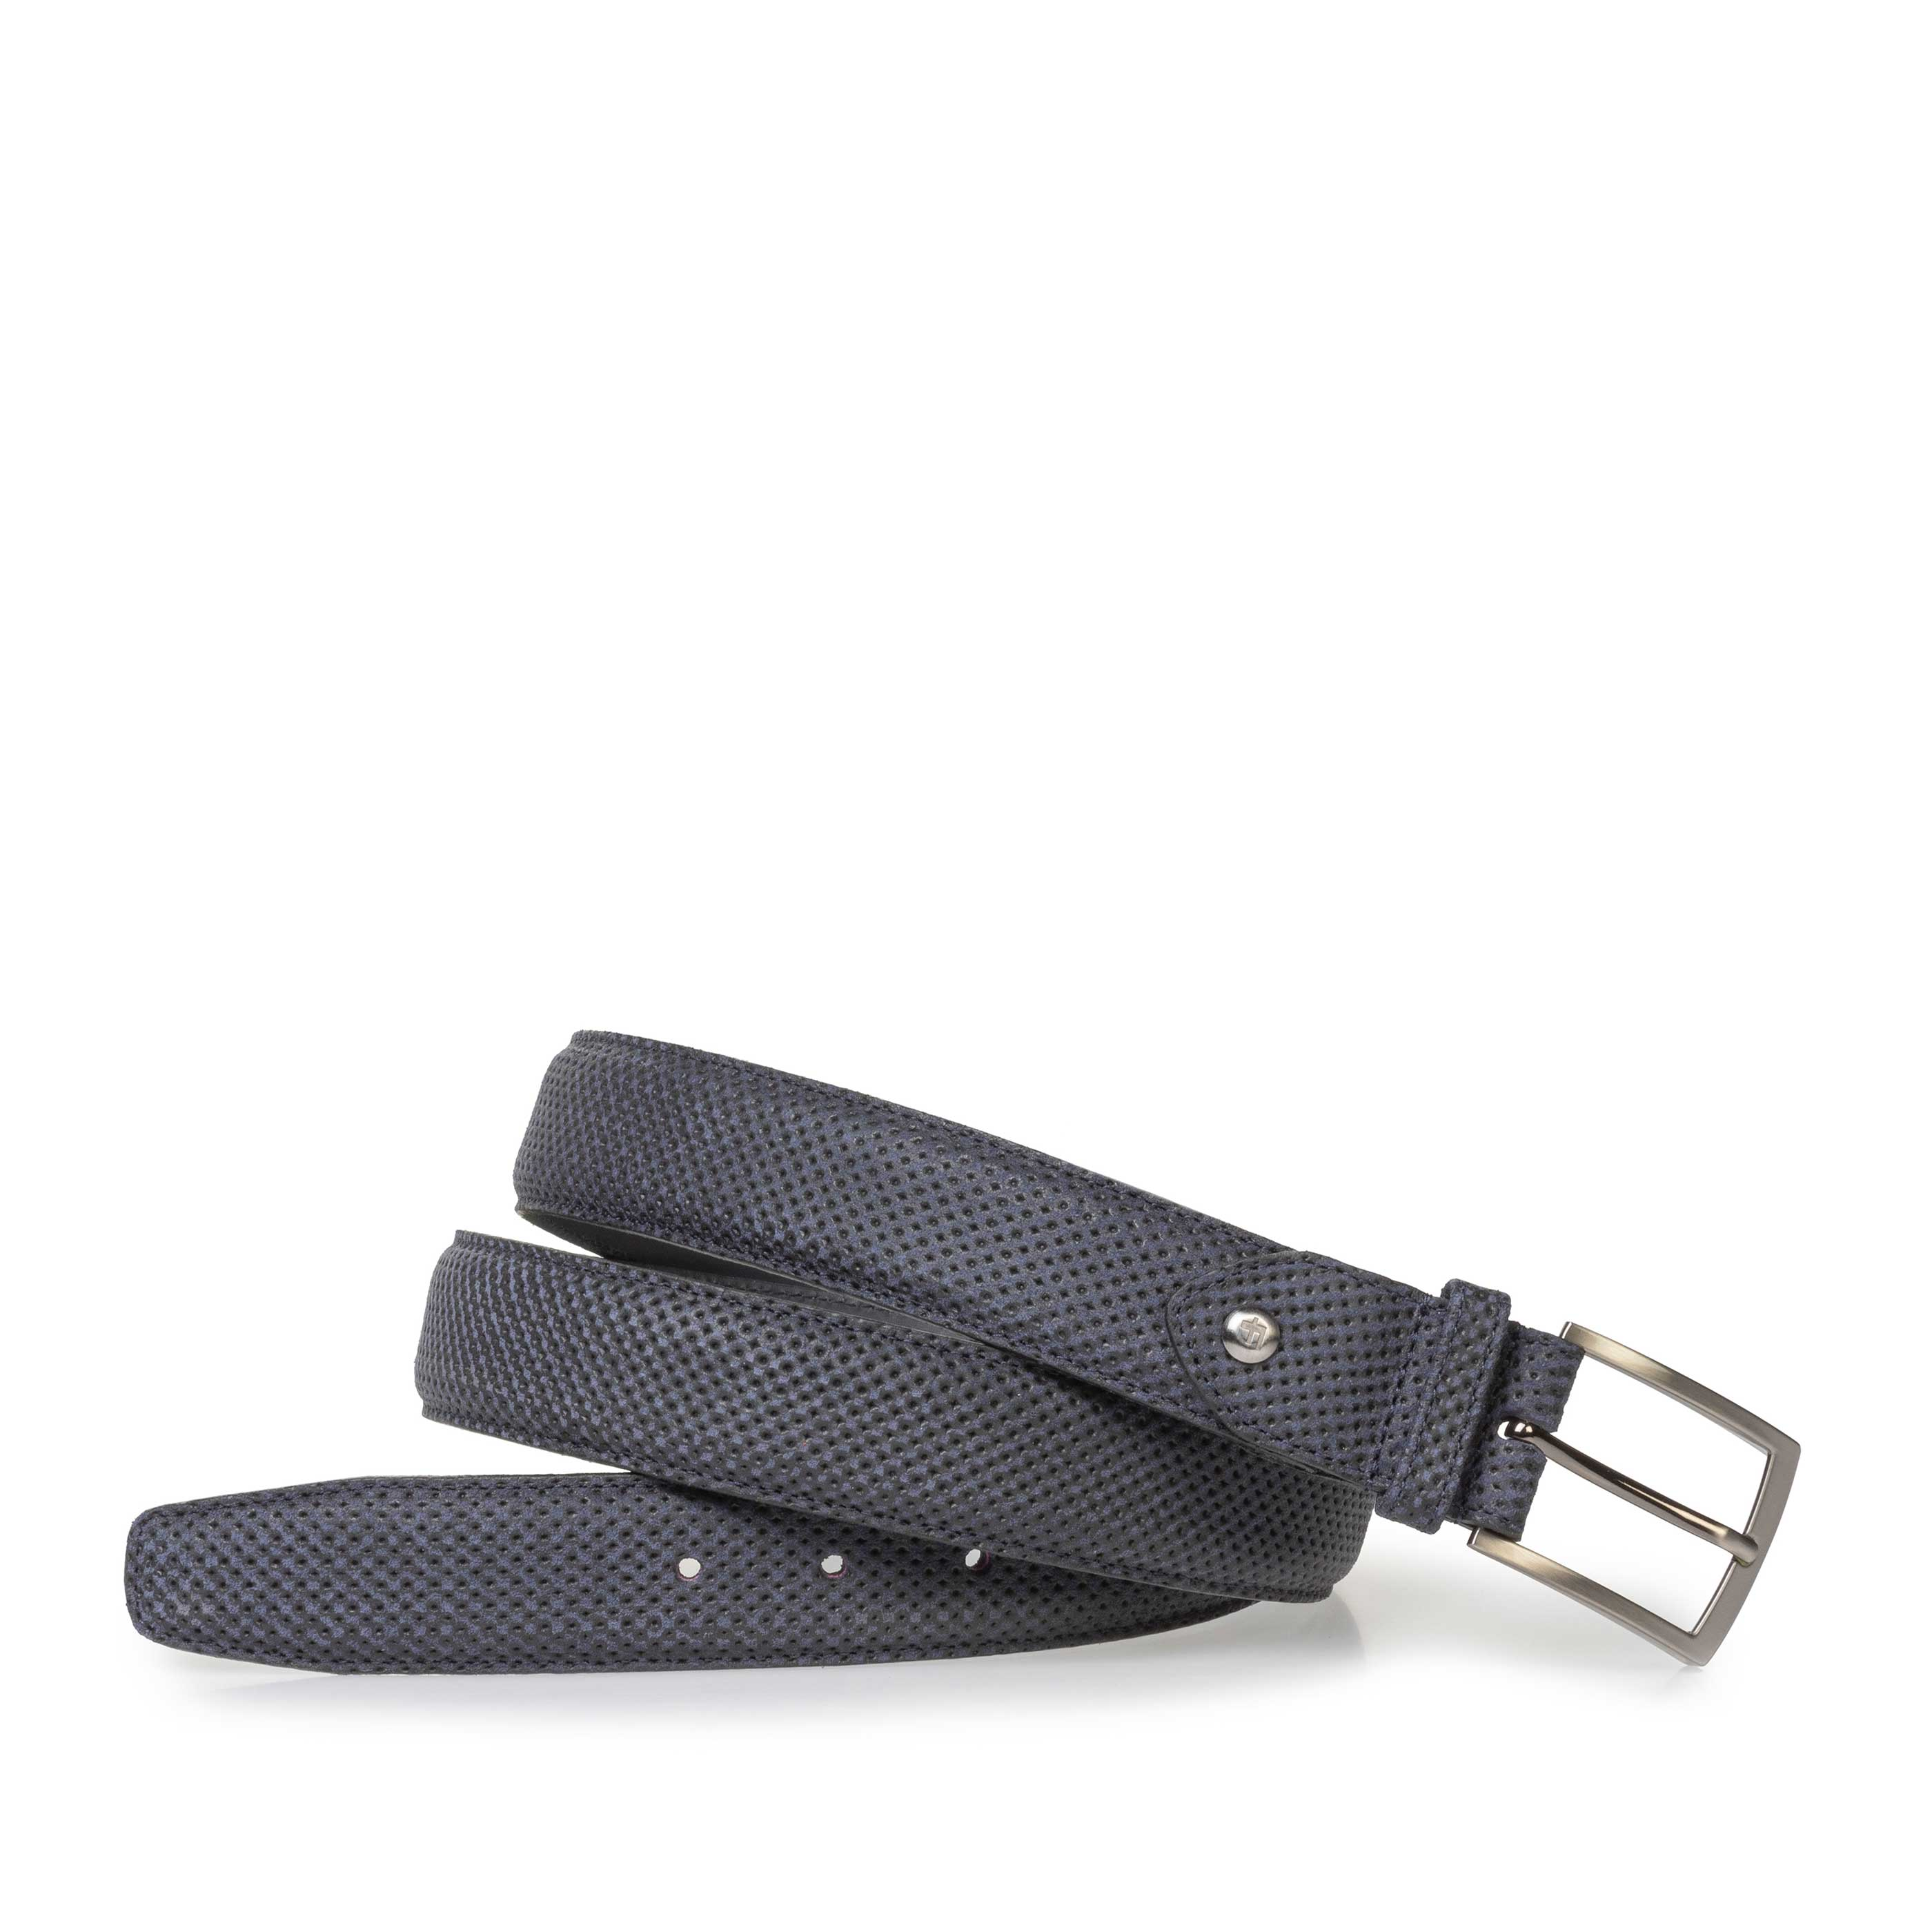 75201/76 - Dark blue suede leather belt with print